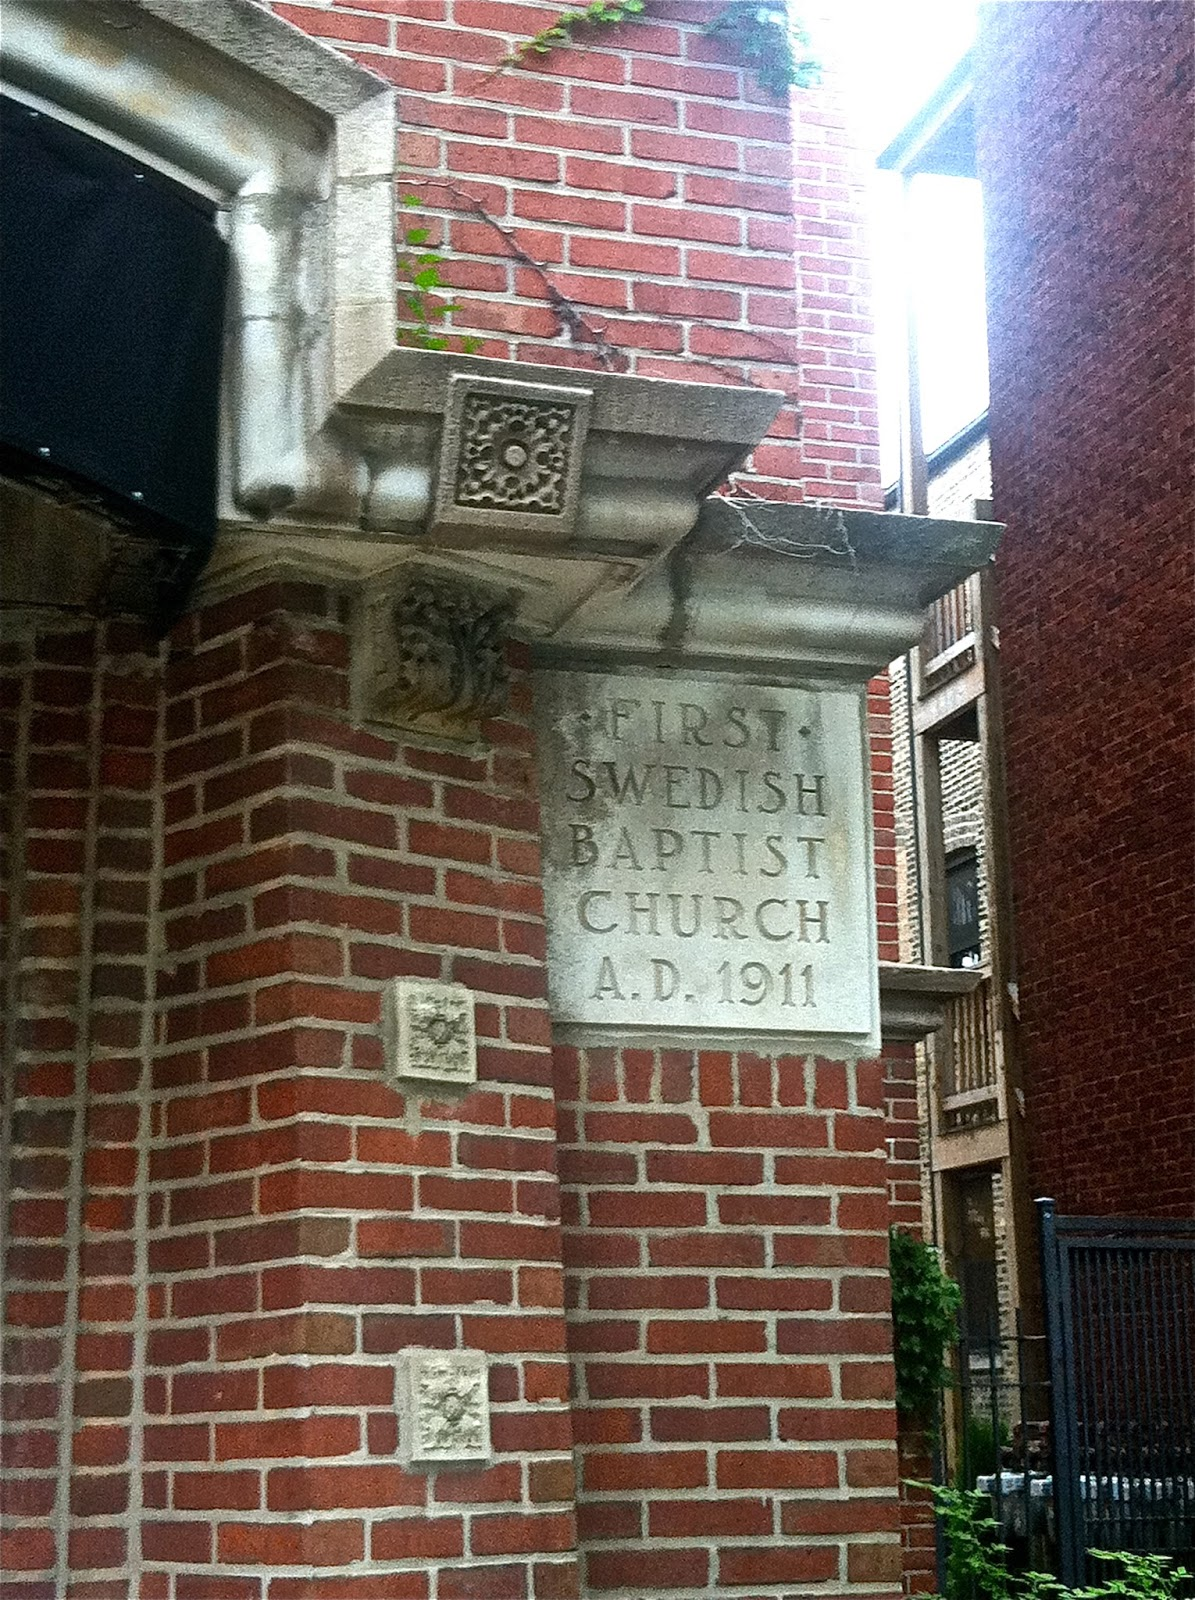 The Swedish Covenant Church Was Founded By Evangelical Mission Of America Now ECC Organization On February 20